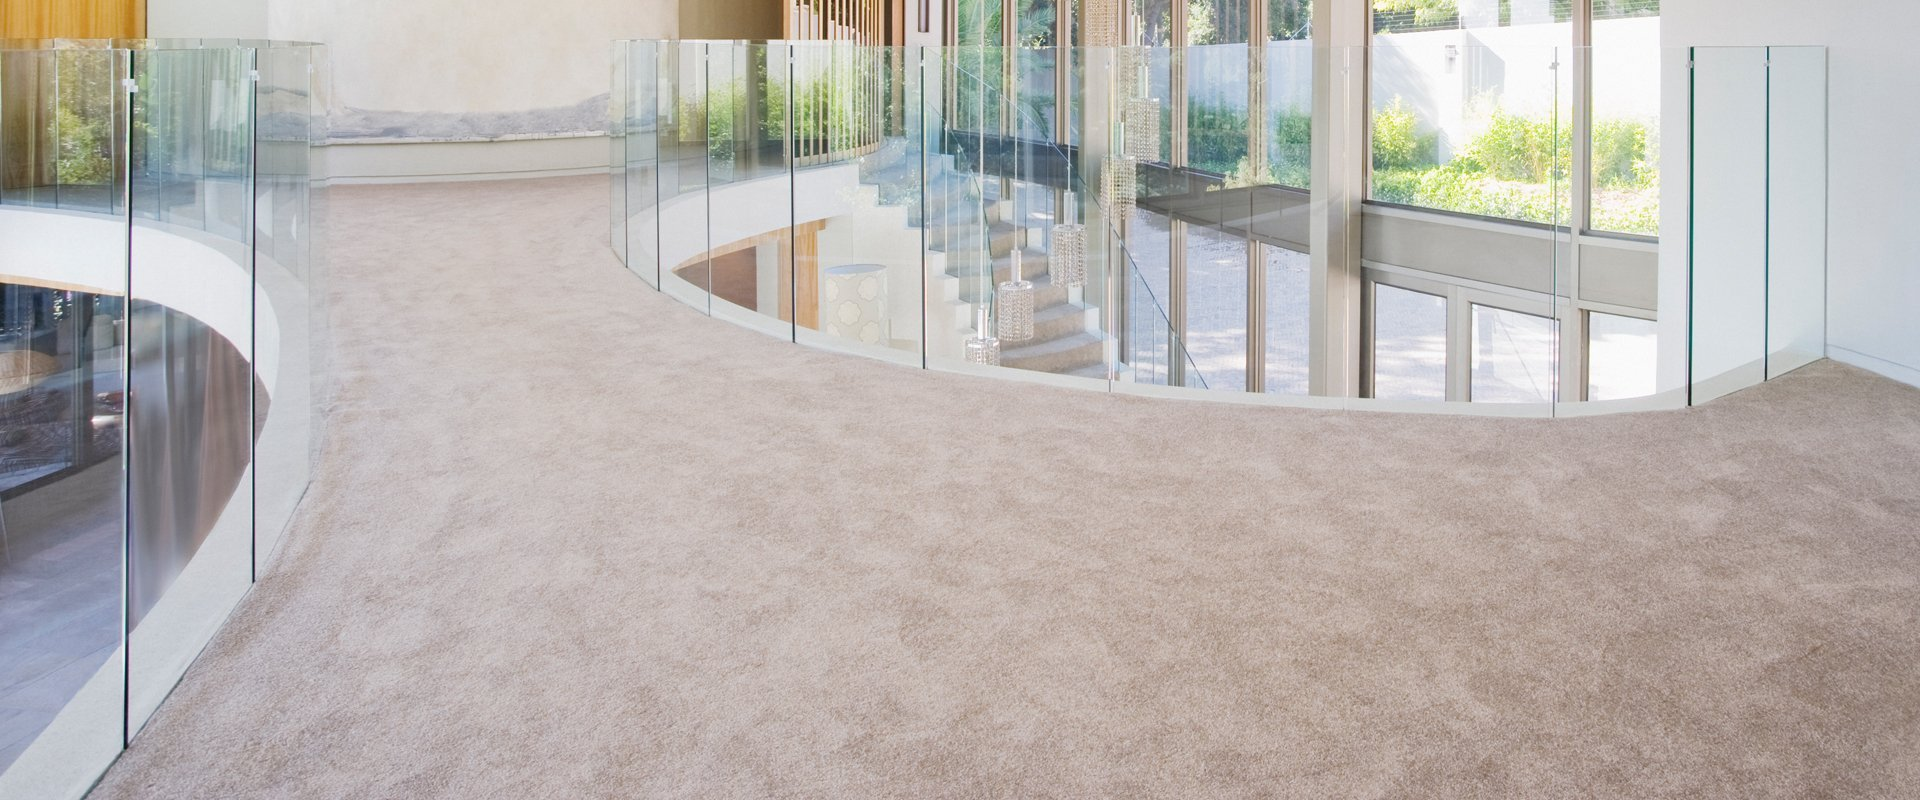 Stunning carpets and rugs for your home. At Eileen's Carpets ...